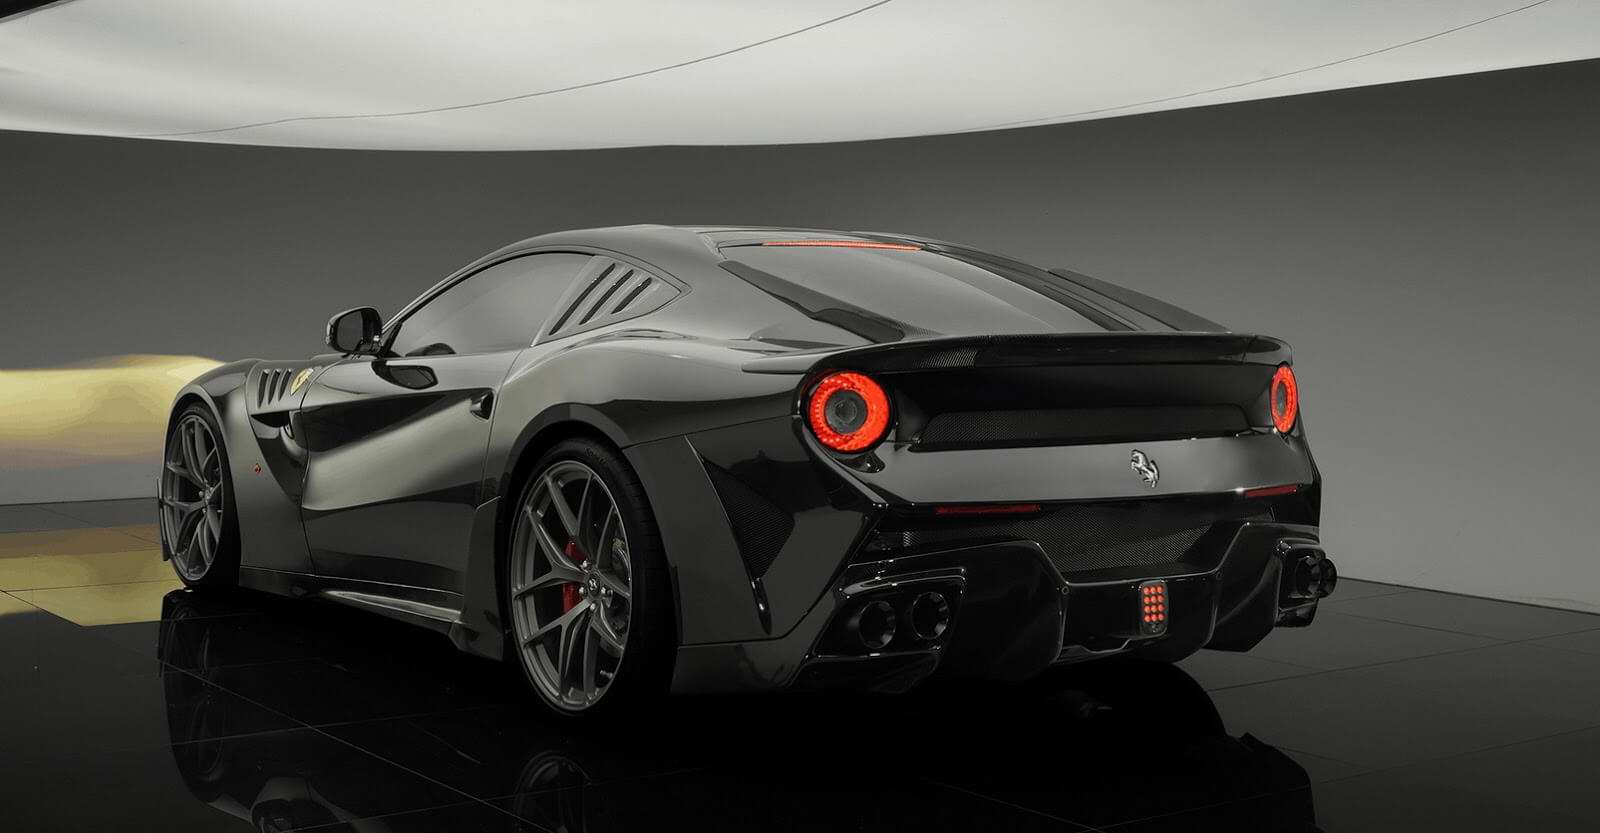 93 Best Review Ferrari F12 2020 Exterior with Ferrari F12 2020